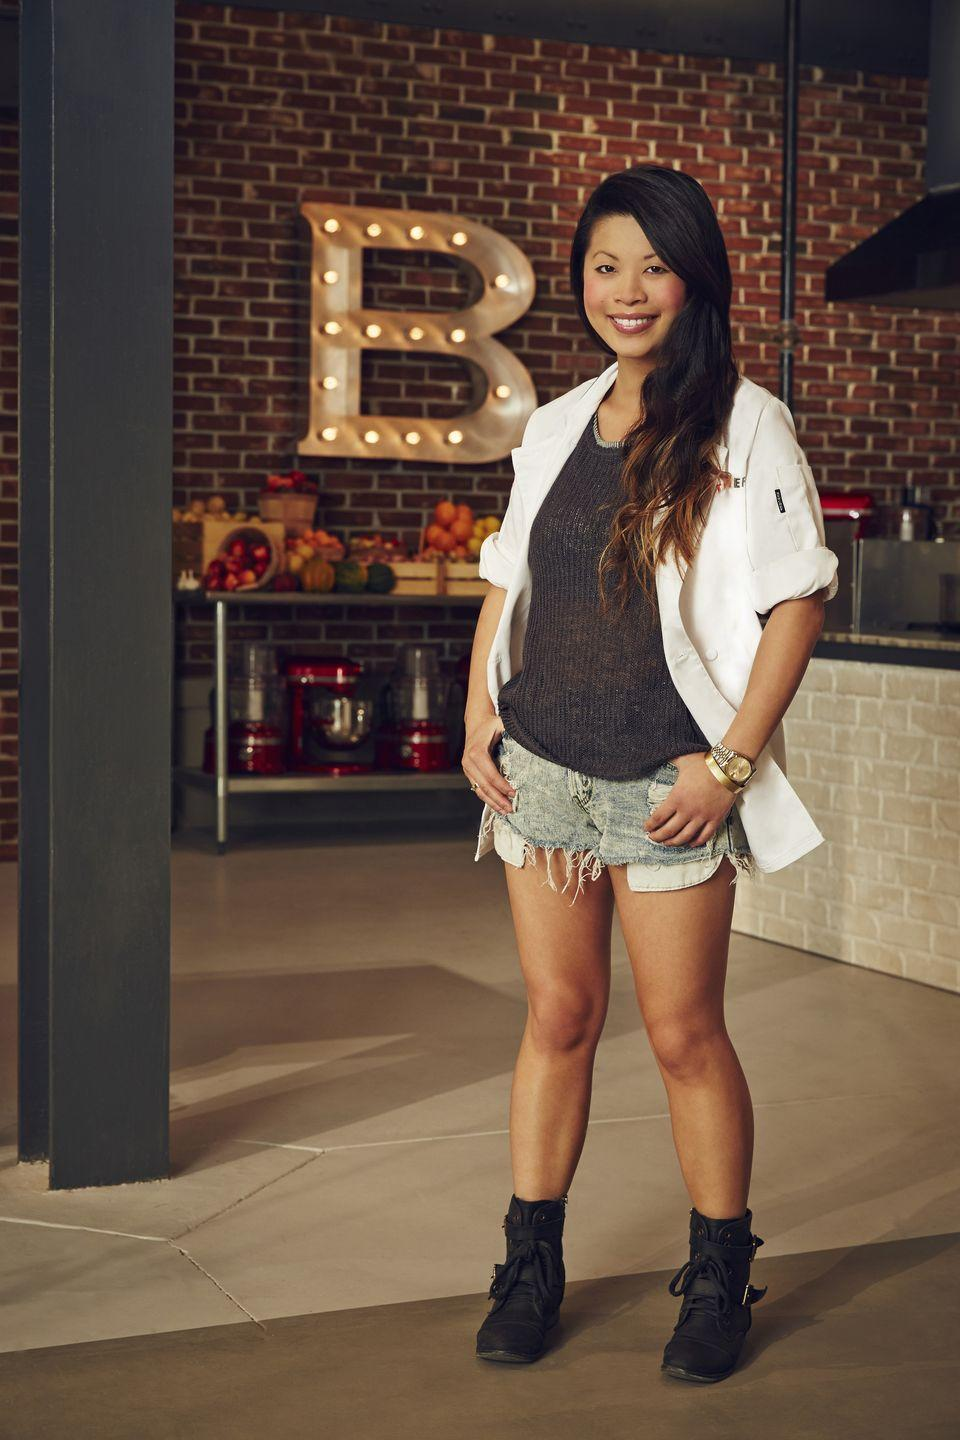 <p>The Los Angeles-based chef and protégée of <em>Top Chef </em>winner Michael Voltaggio set her sights on the prize when she entered the <em>Top Chef: Boston </em>kitchen in 2014. It seems to have worked because she took home the top prize. </p>